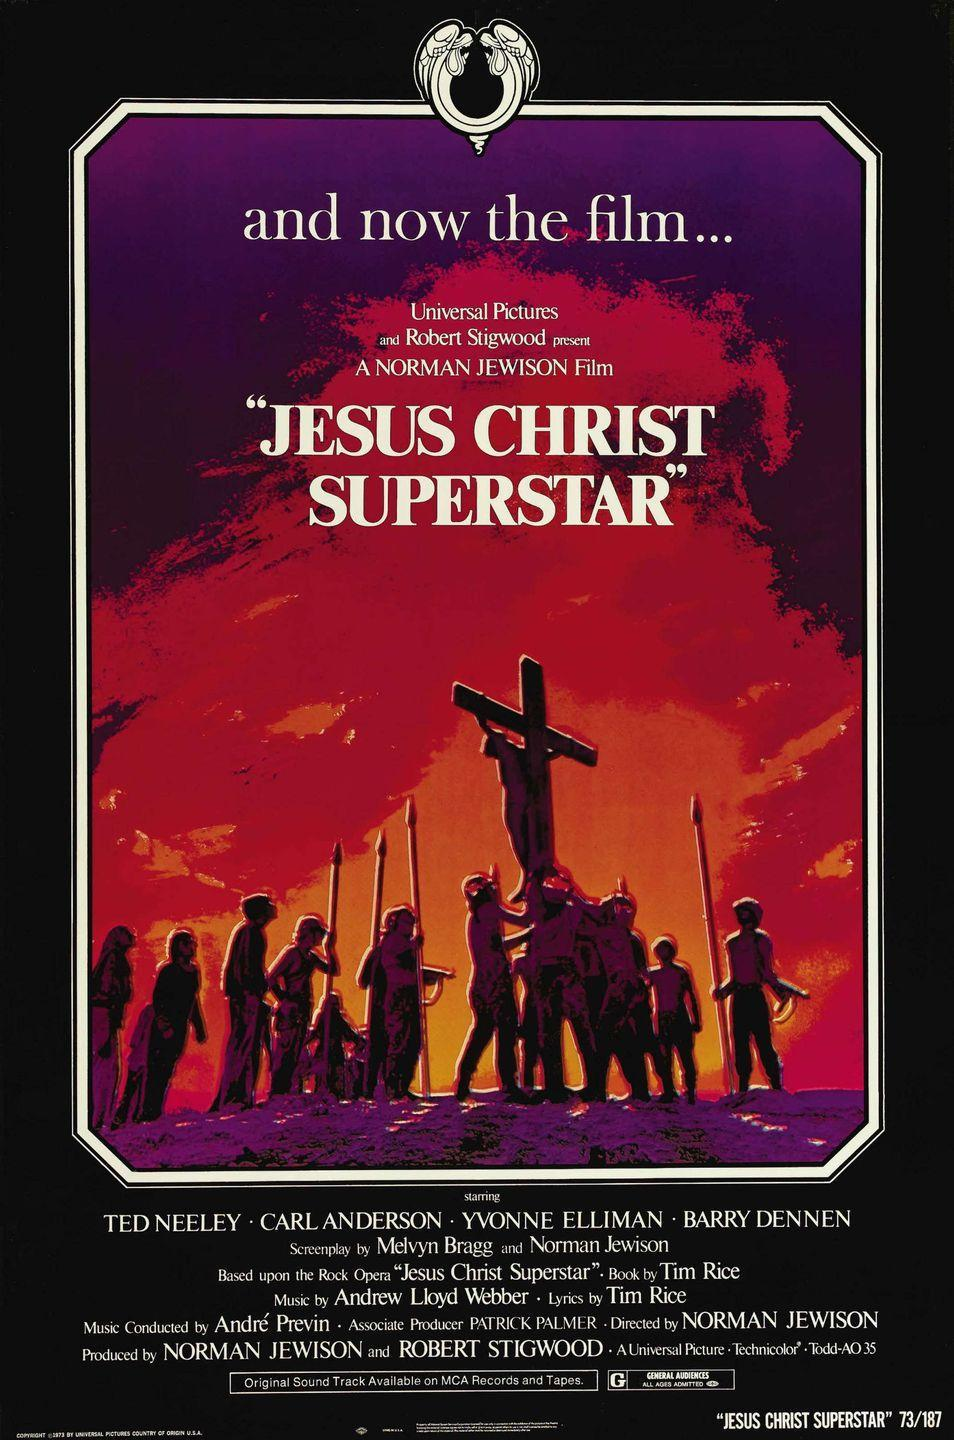 "<p>Andrew Lloyd Webber's retelling of the story of Jesus in his final days set to a rock score is admittedly not an easy sell. You'll probably change your tune sometime in the middle of ""Heaven on Their Minds,"" however. </p><p><a class=""link rapid-noclick-resp"" href=""https://www.amazon.com/Jesus-Christ-Superstar-Ted-Neeley/dp/B0036DJLJY/ref=sr_1_4?tag=syn-yahoo-20&ascsubtag=%5Bartid%7C10063.g.34344525%5Bsrc%7Cyahoo-us"" rel=""nofollow noopener"" target=""_blank"" data-ylk=""slk:WATCH NOW"">WATCH NOW</a></p>"